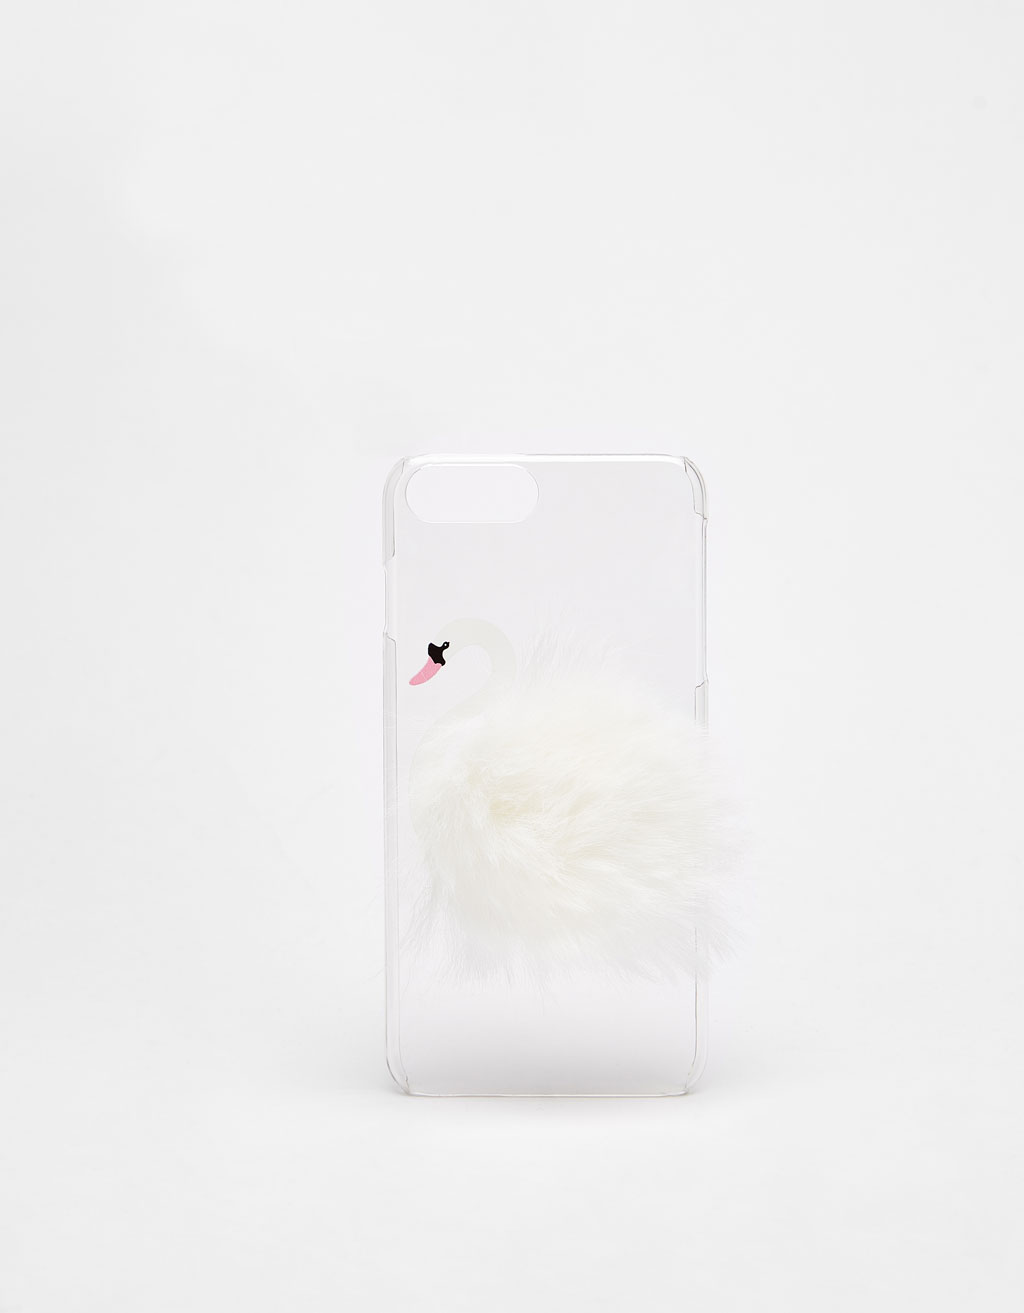 Swan iPhone 6 Plus/7 Plus/8 Plus case with pompom